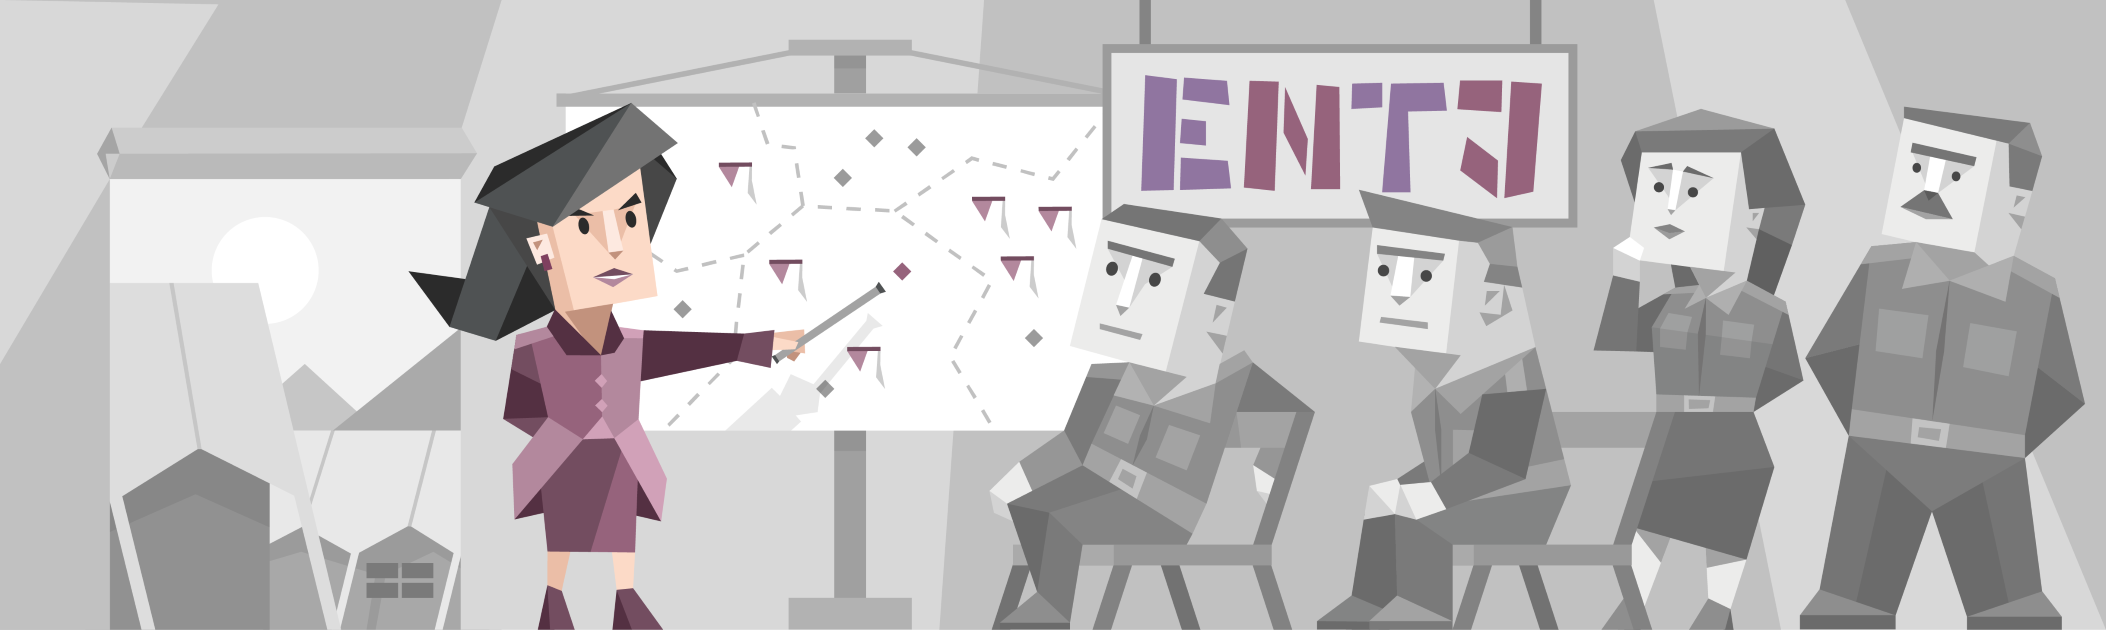 Introduction | Commander Personality (ENTJ-A / ENTJ-T) | 16Personalities